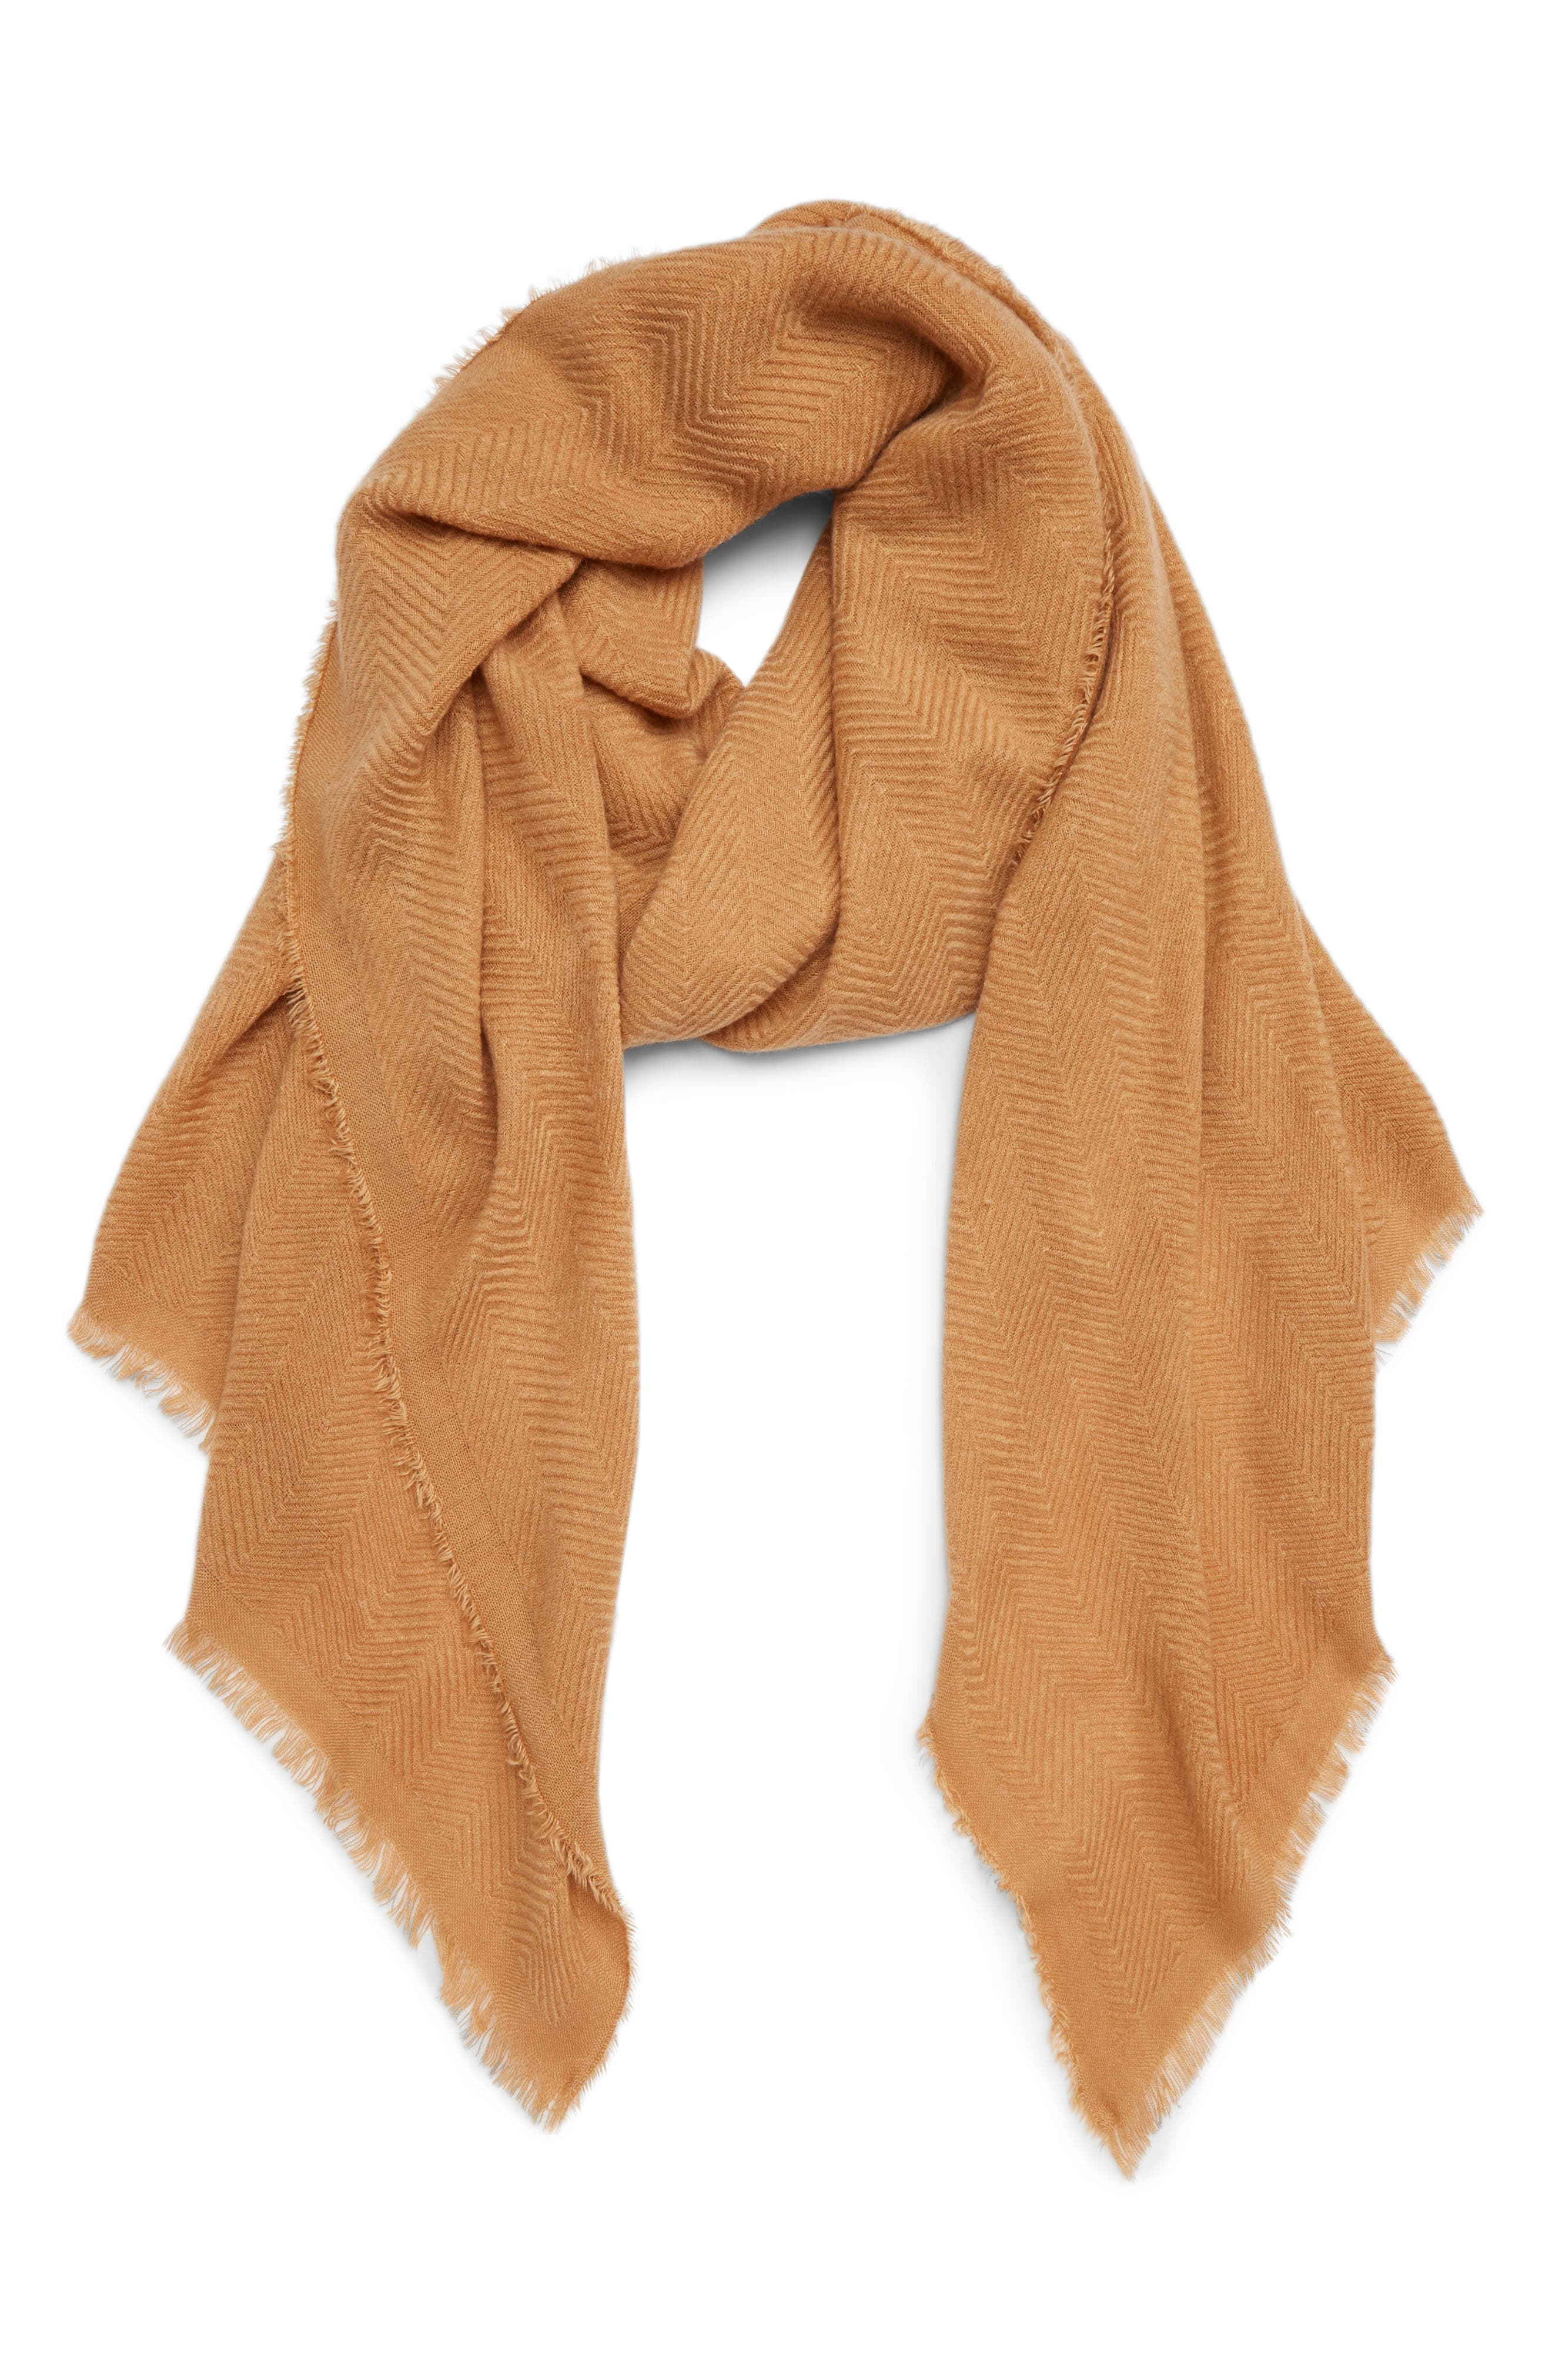 SOLE SOCIETY Oversize Blanket Scarf, Main, color, CAMEL